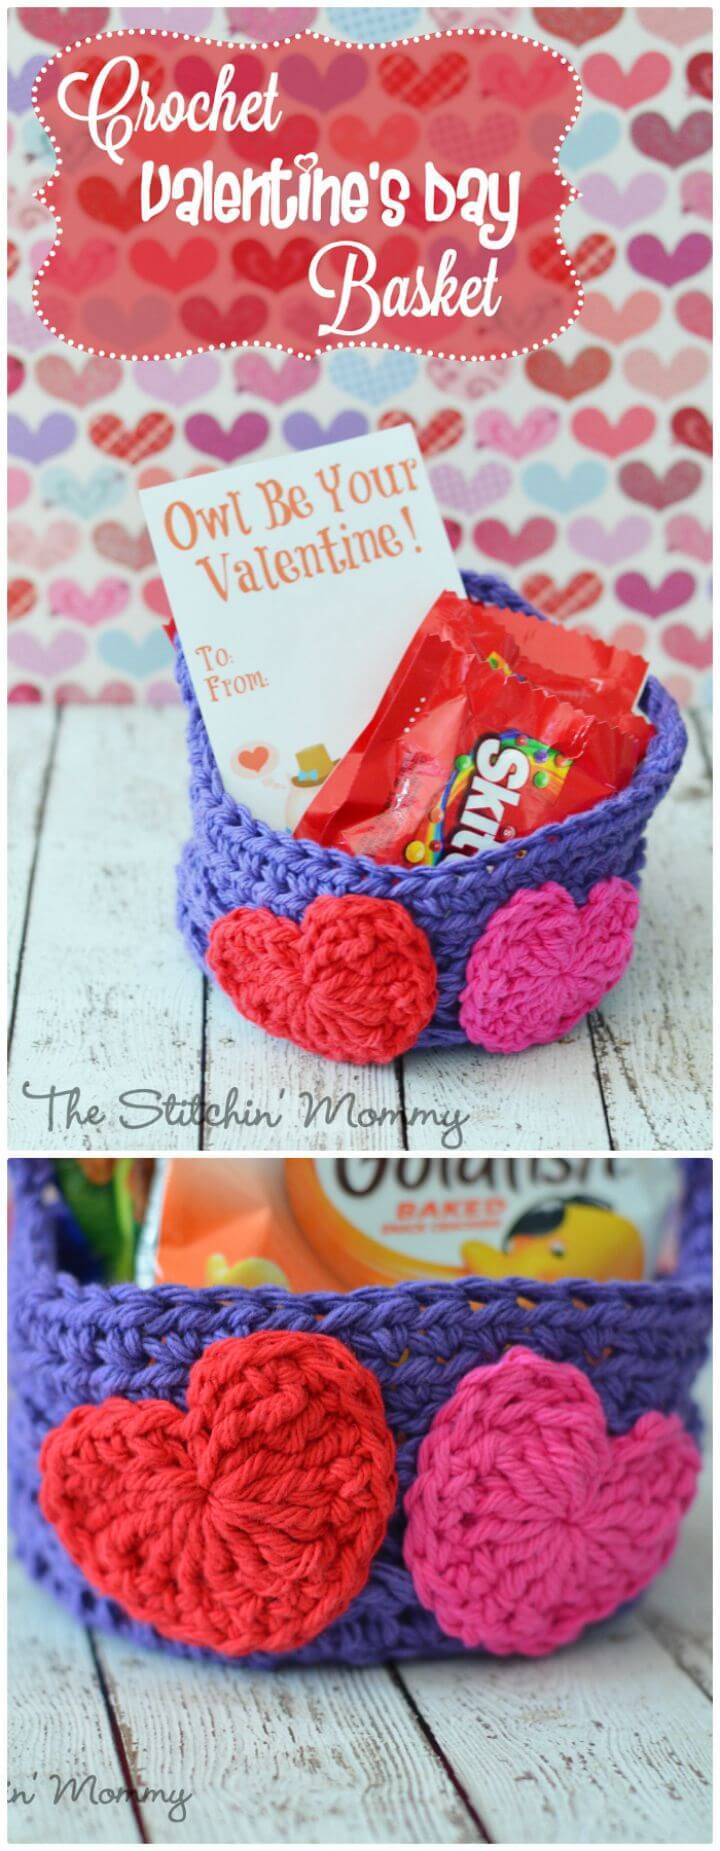 94 Free Crochet Patterns for Valentine\'s Day Gifts - DIY & Crafts